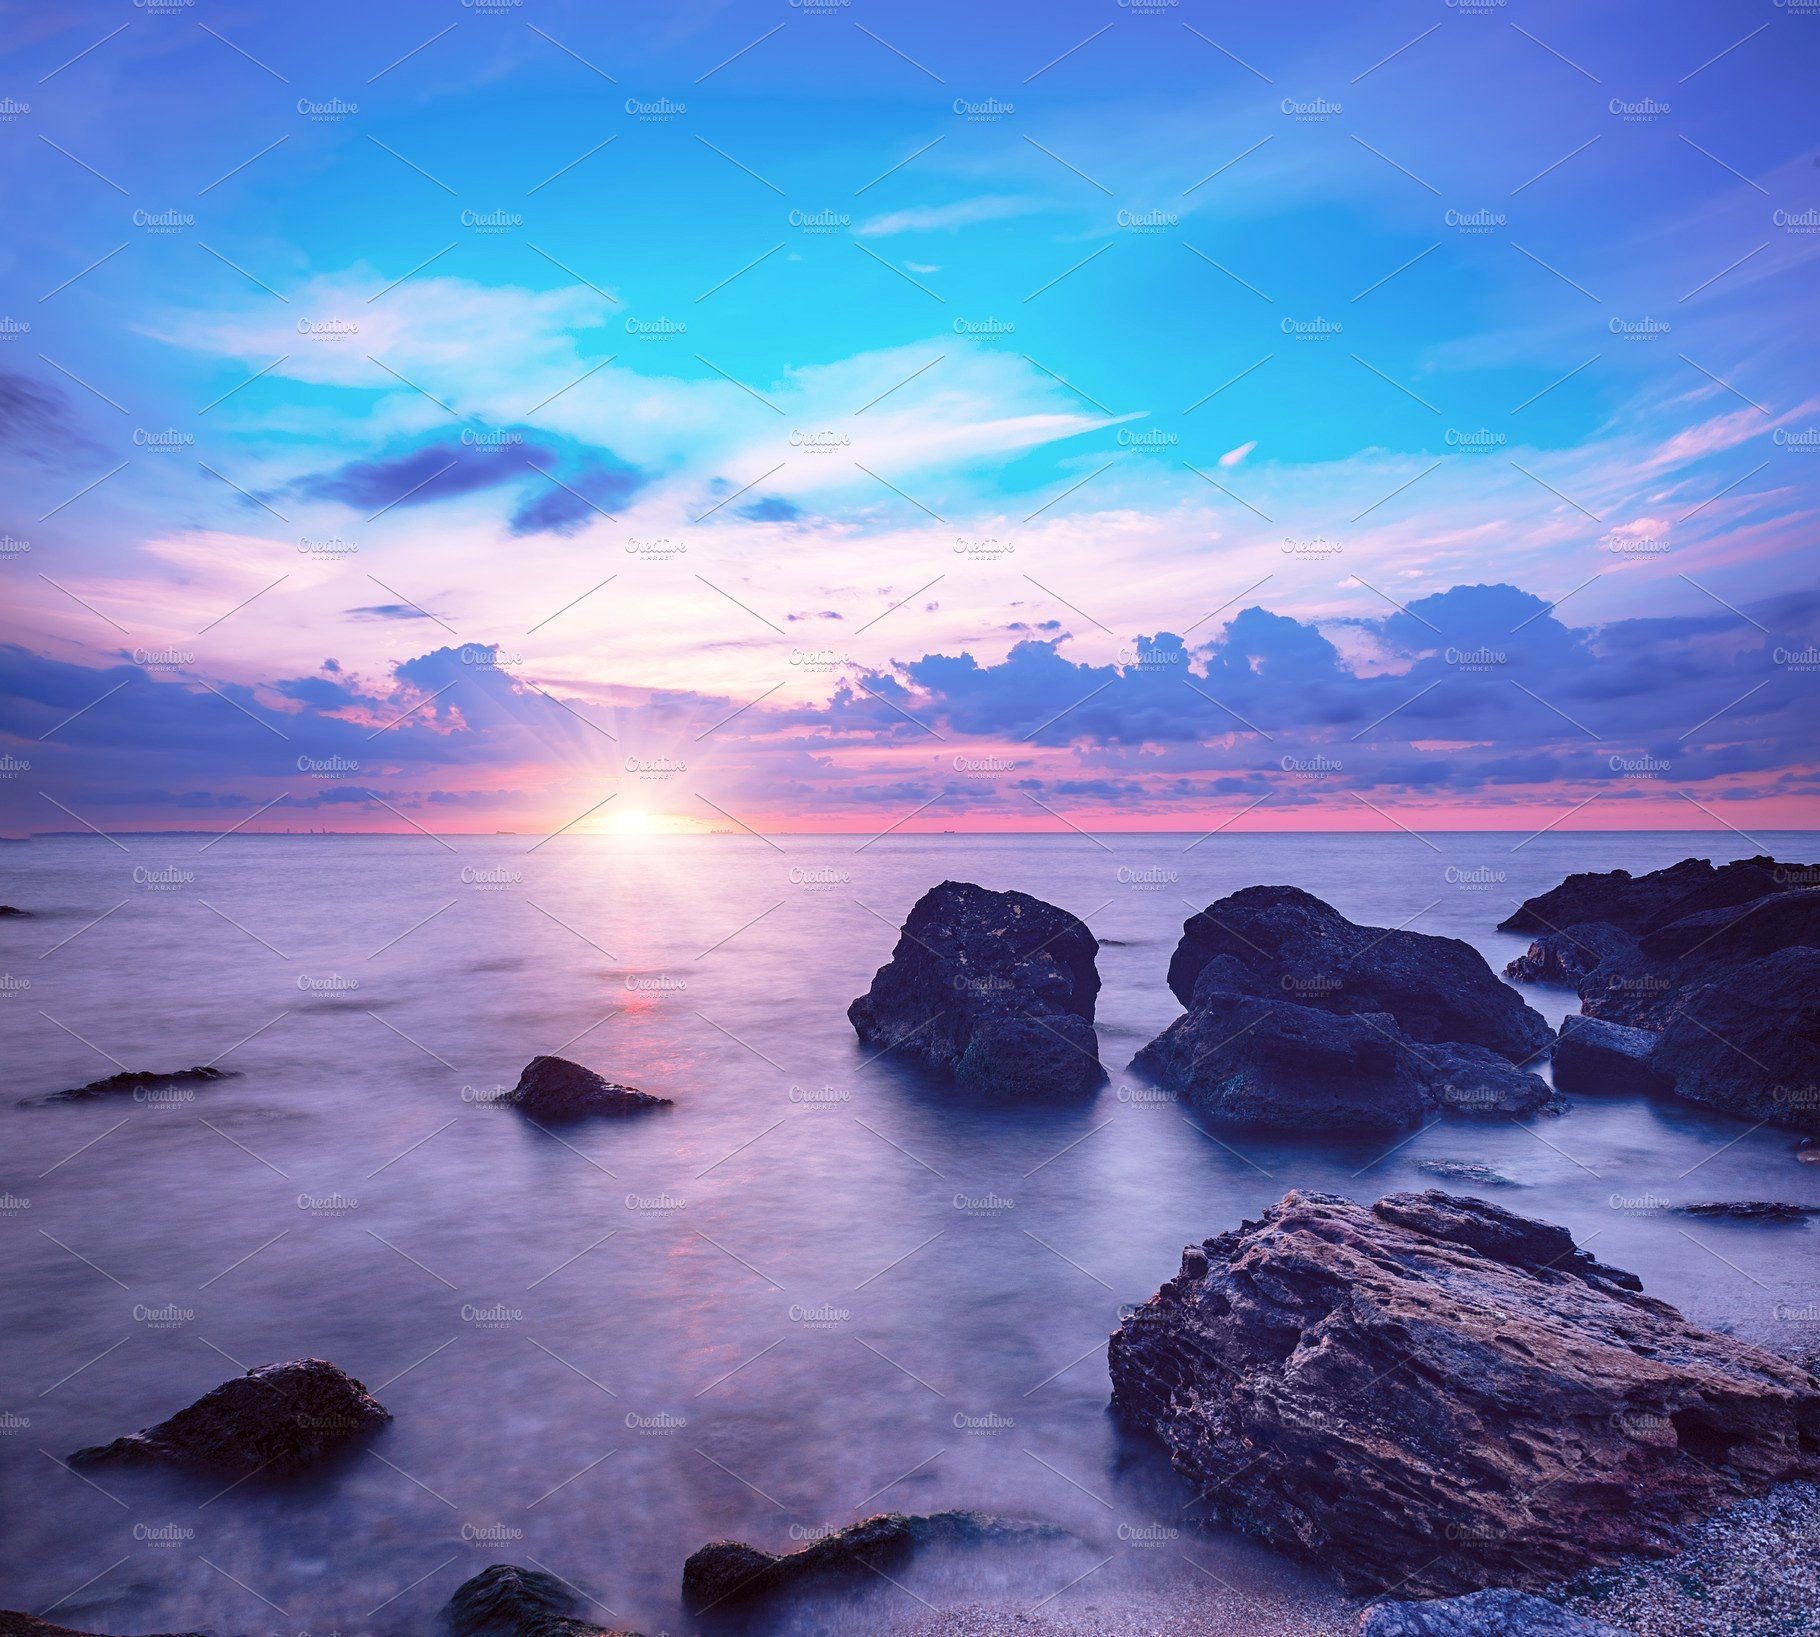 Beautiful Colorful Sunrise At The Sea With Dramatic Clouds And Boulders Beauty World Natural Outdoors T Landscaping Images Scenery Photography Beach Landscape